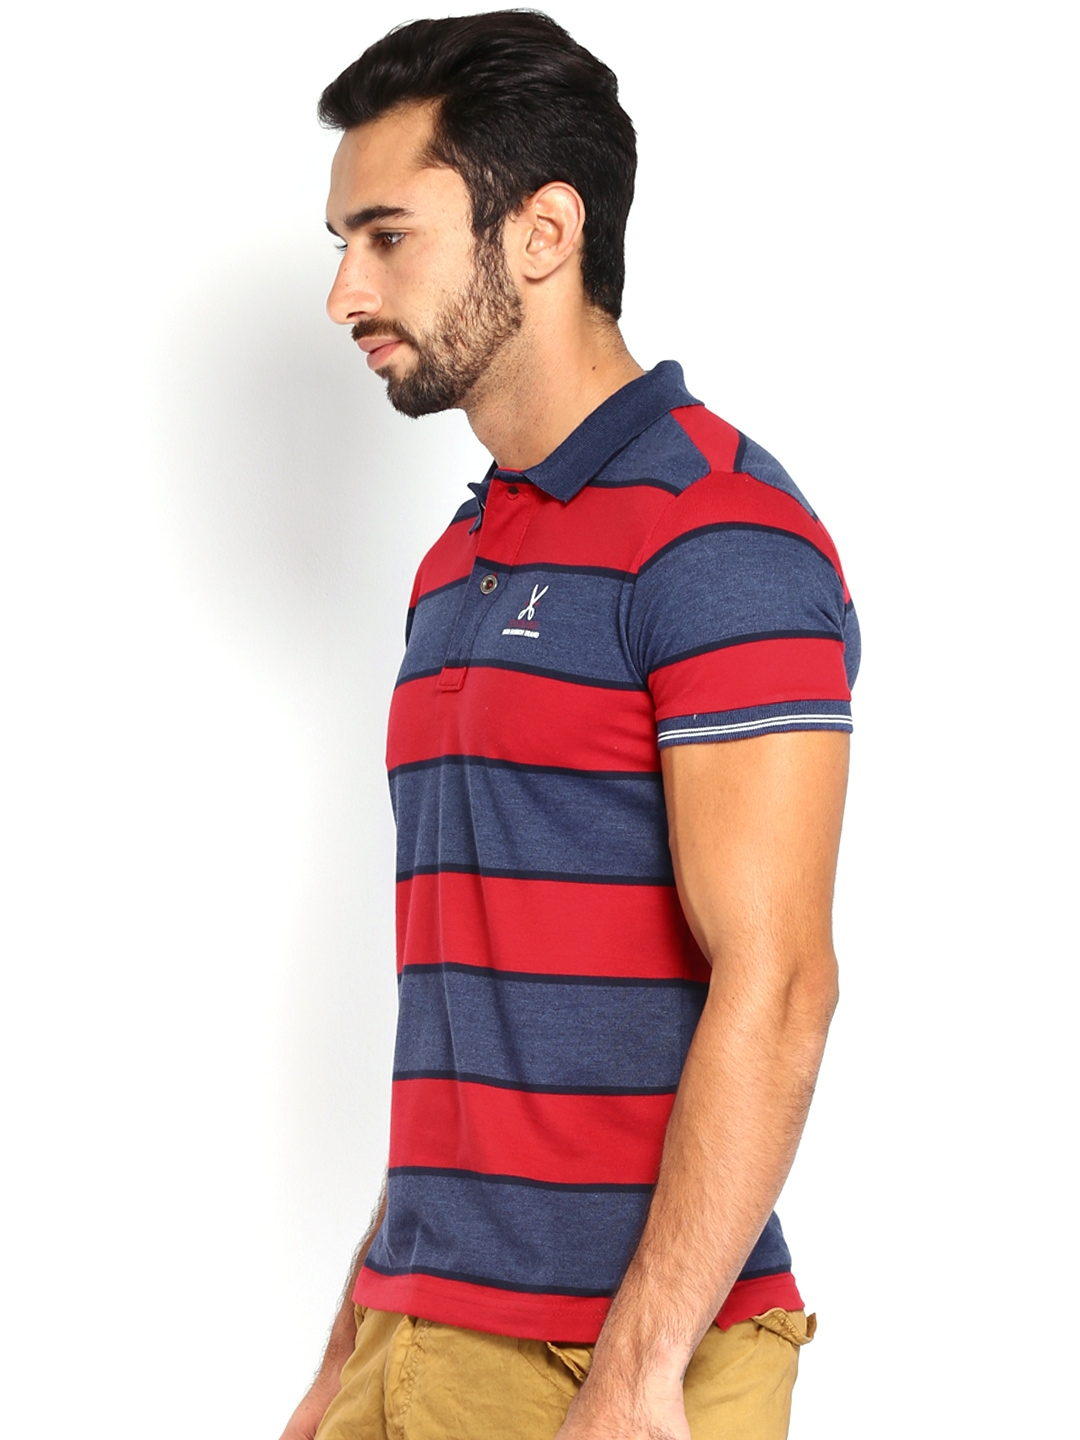 Myntra status quo men red blue striped polo t shirt for Red blue striped shirt